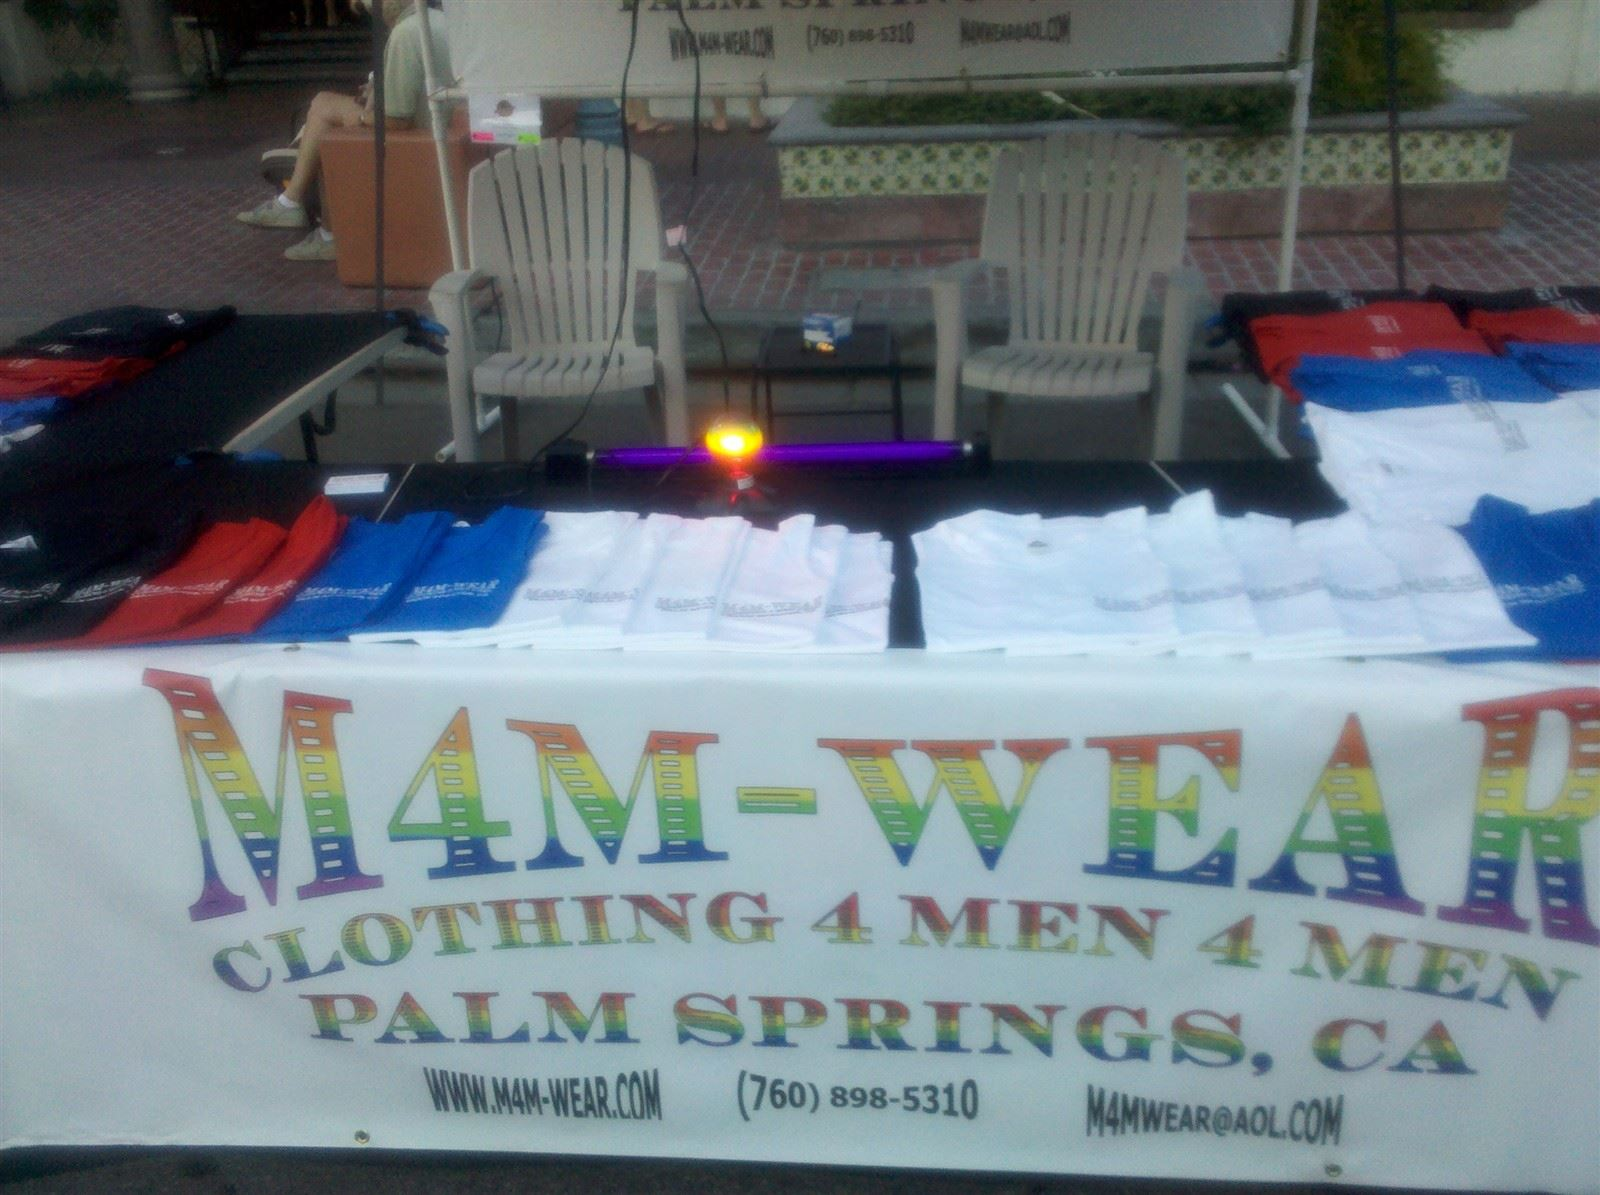 M4M-WEAR Booth at Village Fest Sign and Products